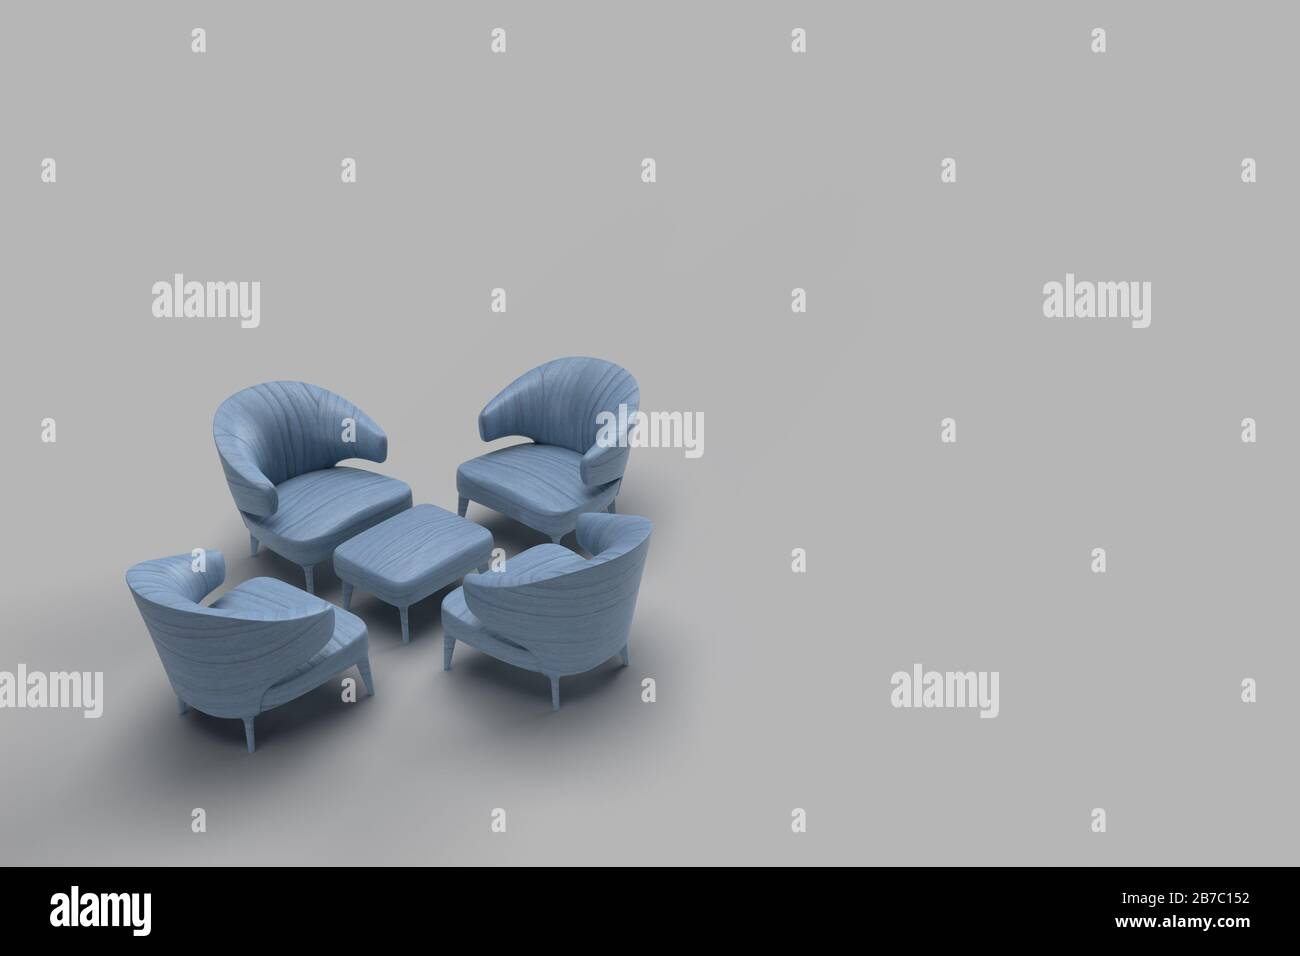 3d Render Of Blue Leather Coated Single Sofa Facing Each Other With Center Table In Grey Background Meeting Concept With Space For Text Stock Photo Alamy